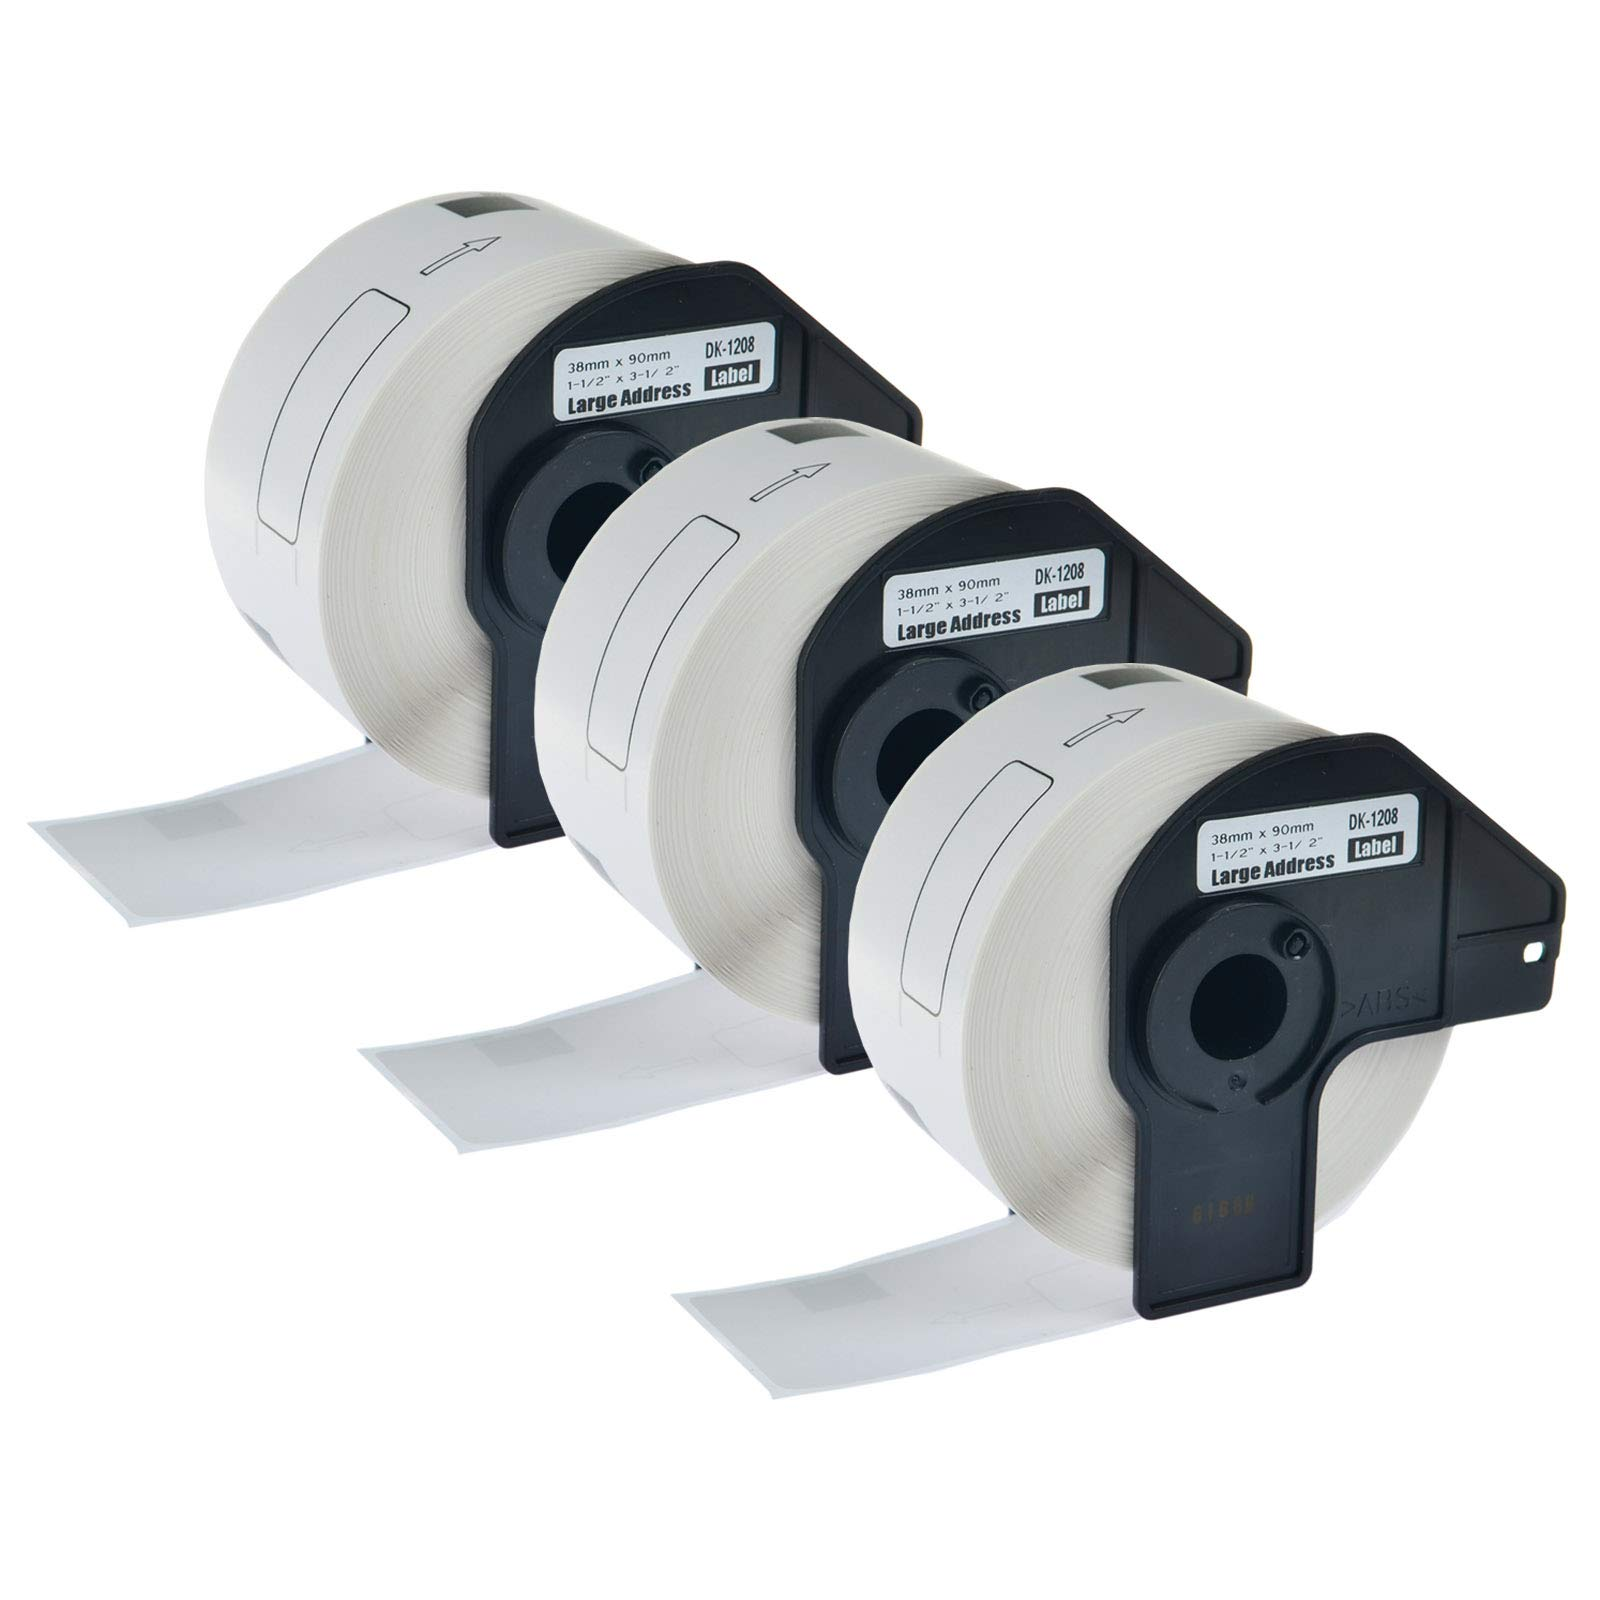 KCYMTONER 3 Rolls Compatible for Brother DK-1208 White Continuous Length Paper Tape Labels,1-1/2 Inches (38mm) by 90mm (3-1/2''), use in P-Touch QL-500 QL-710W QL-1050 QL-1060N Series Label Maker